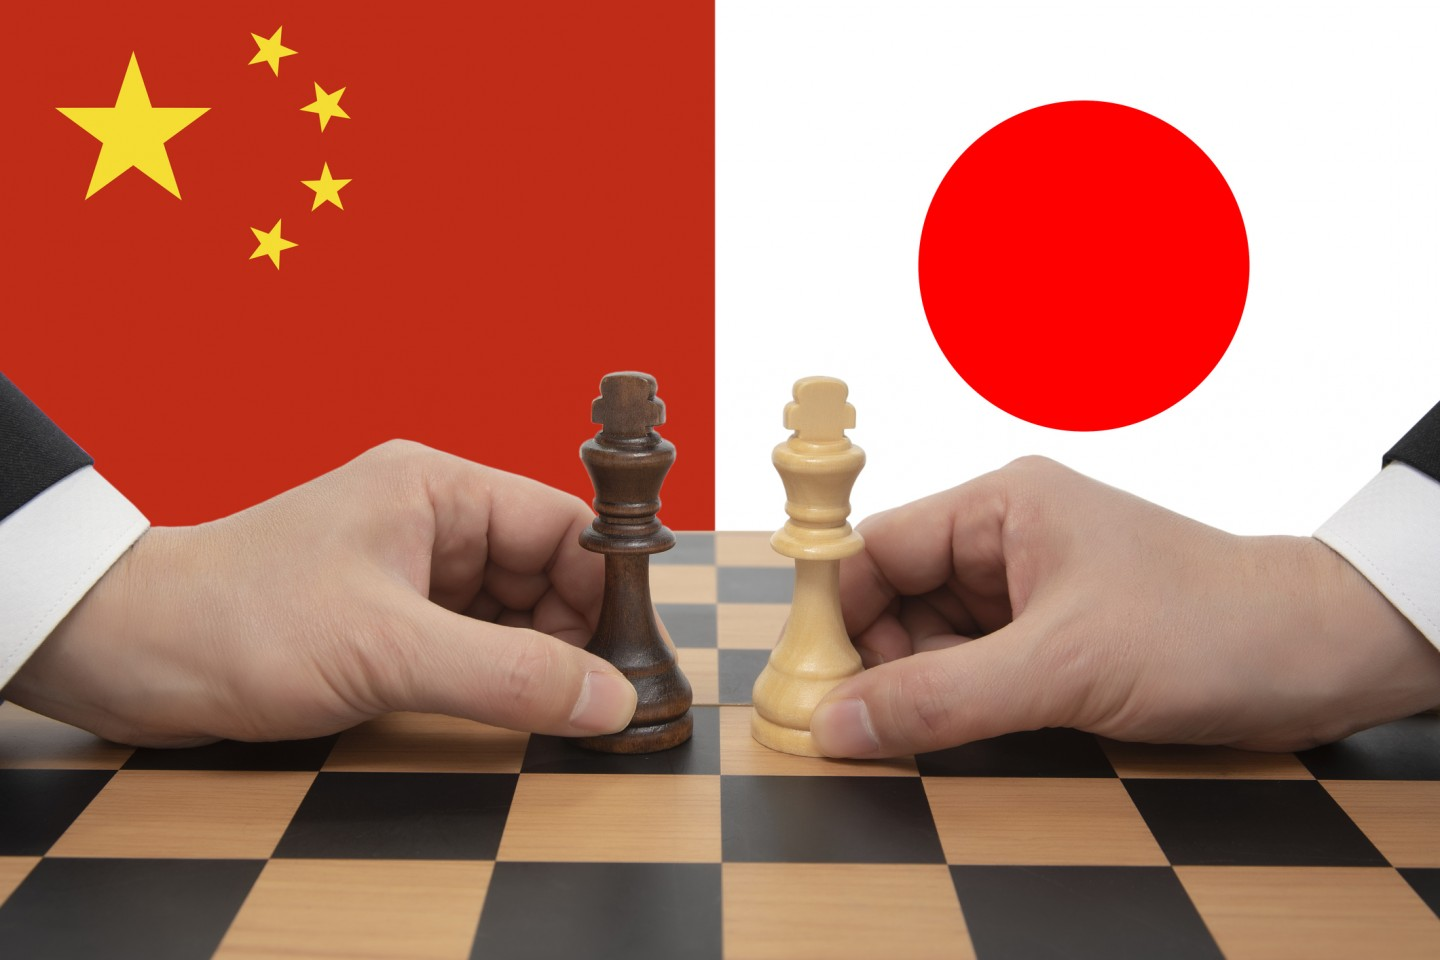 Japan-China relations may face headwinds. (iStock)